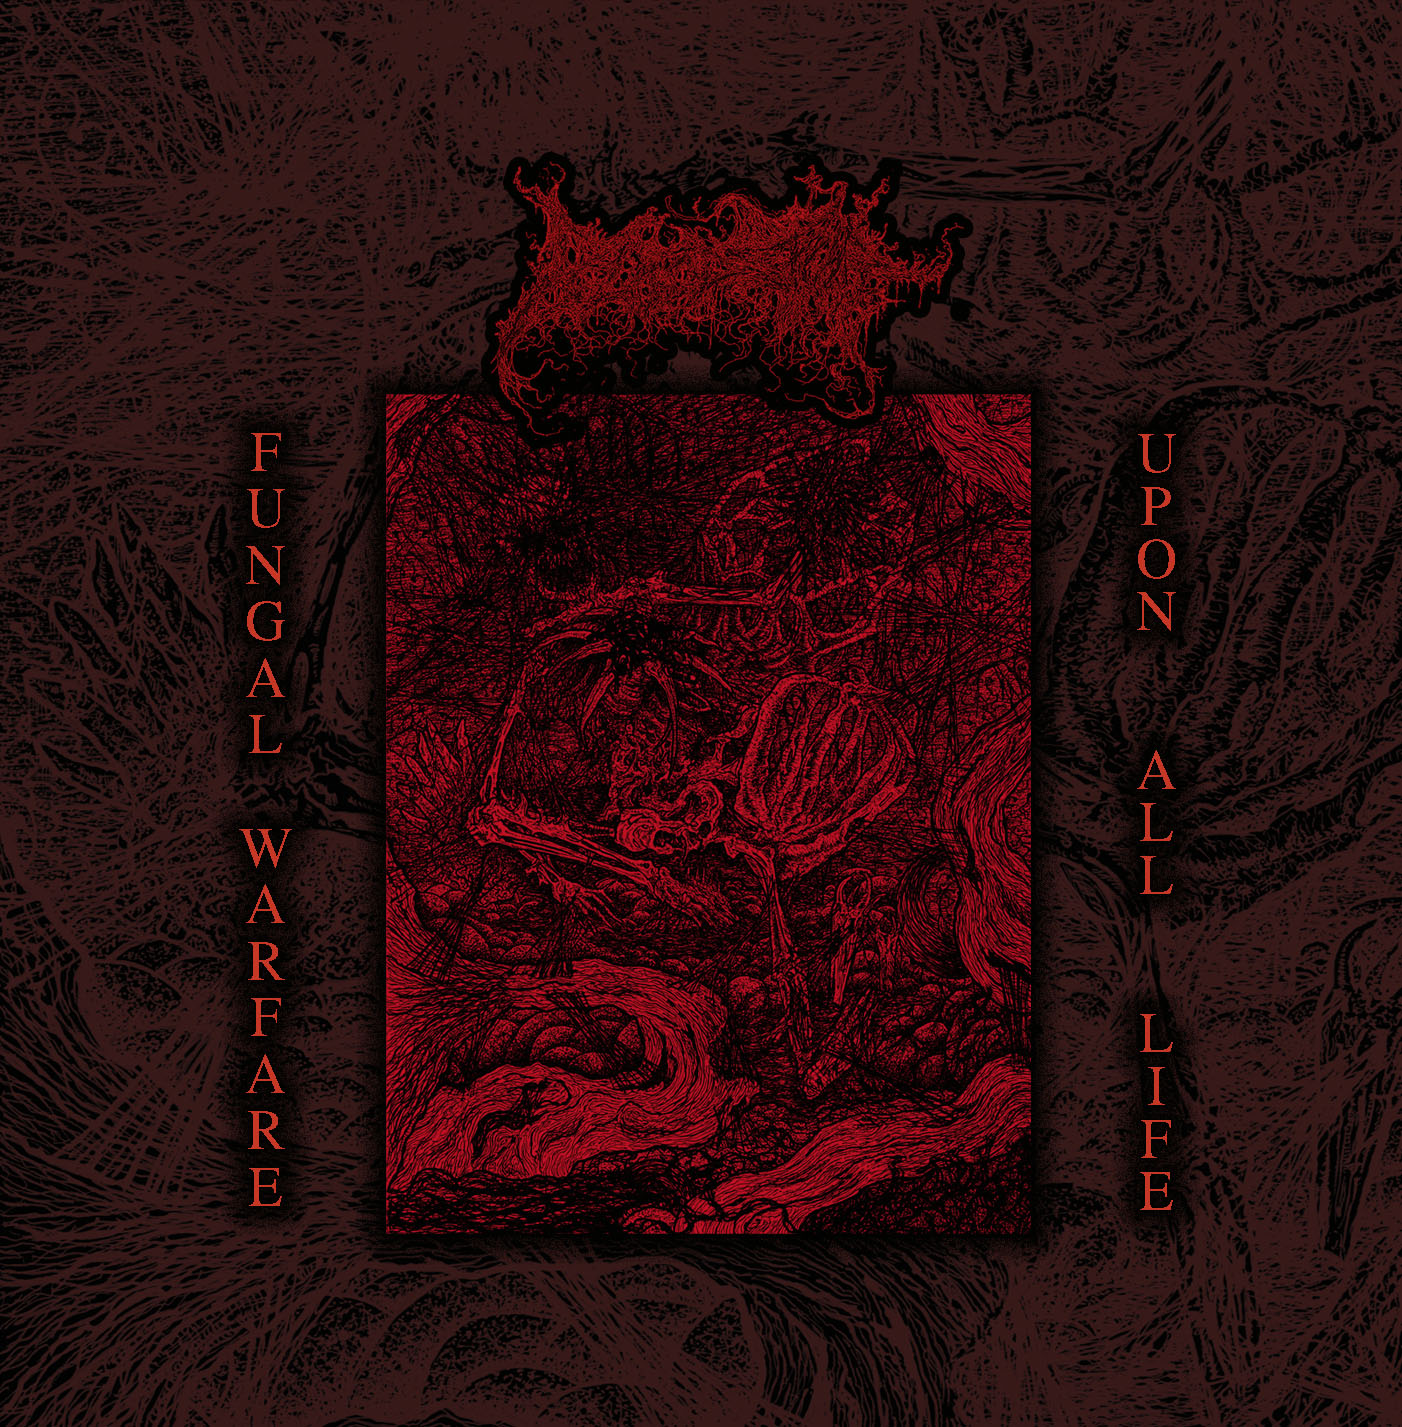 BS_FWUAL_Cover_Blood Harvest